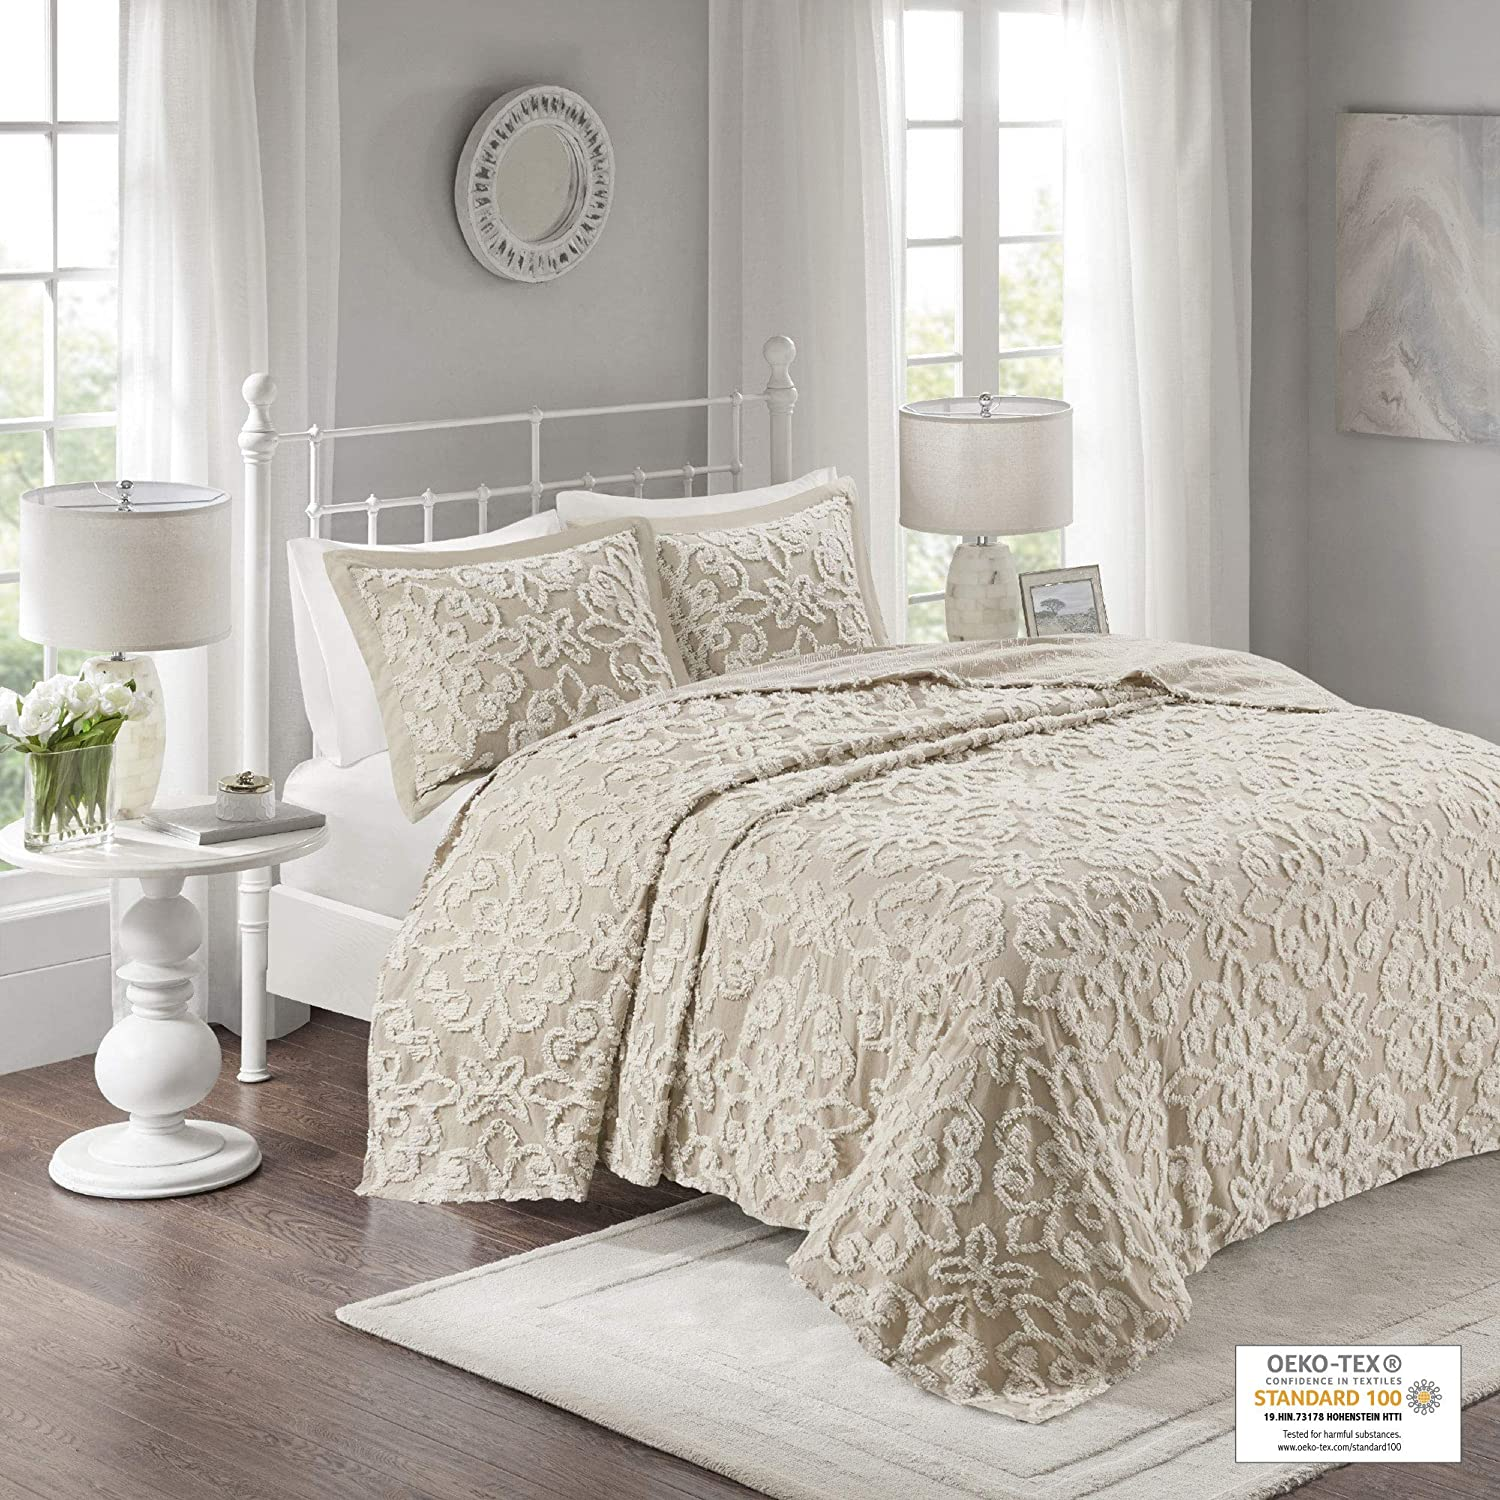 Madison Park MP13-7124 Chenille Tufted 100% Cotton Quilt Season, Lightweight, Breathable Coverlet Bedspread Bedding Set